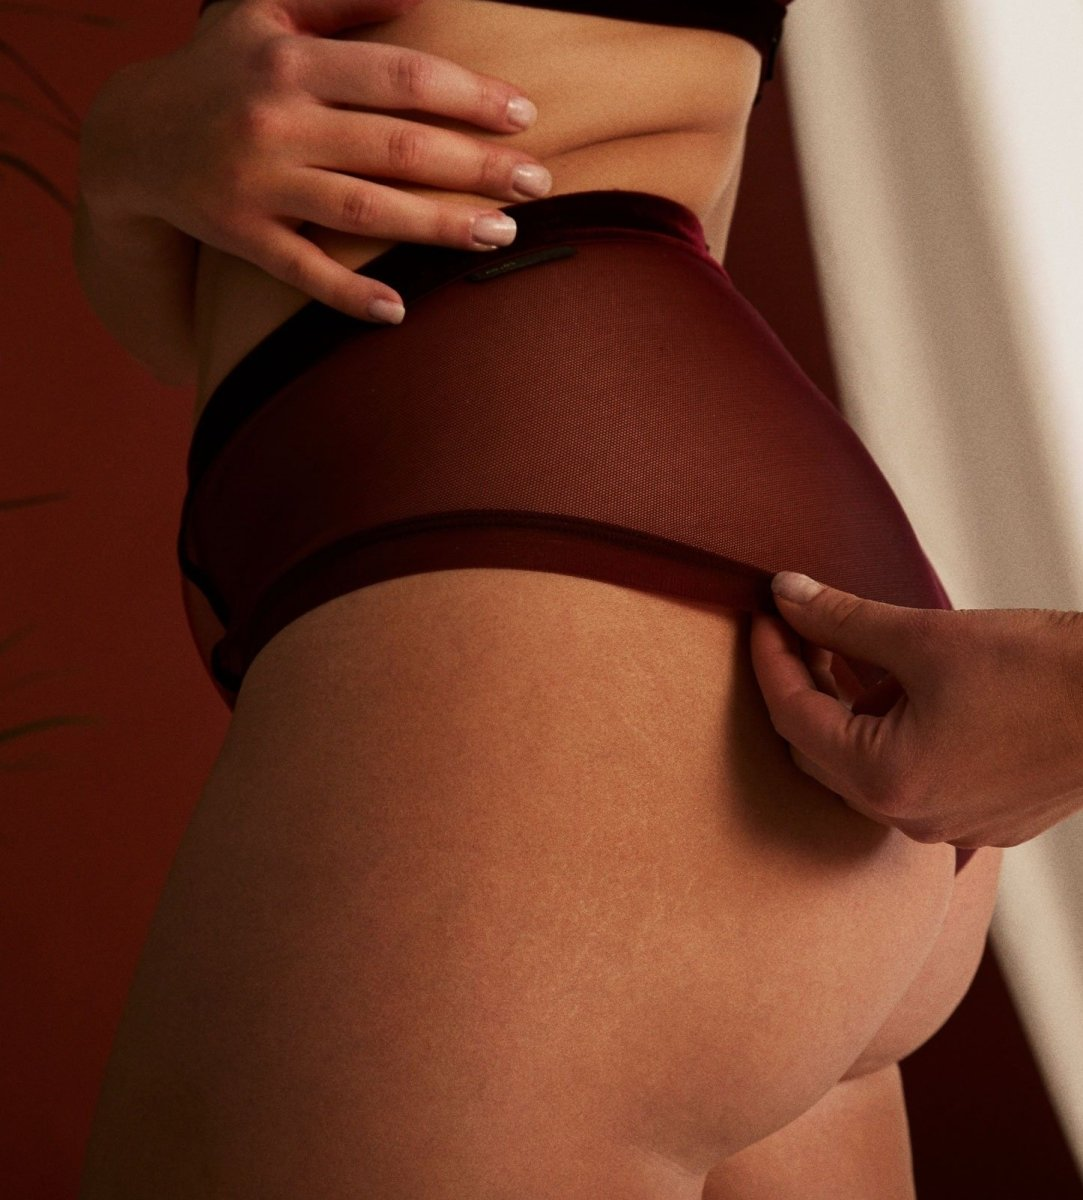 Love shouldn't hurt - HIGHWAIST BRIEFS - Highwaist Briefs - theunderargument.com